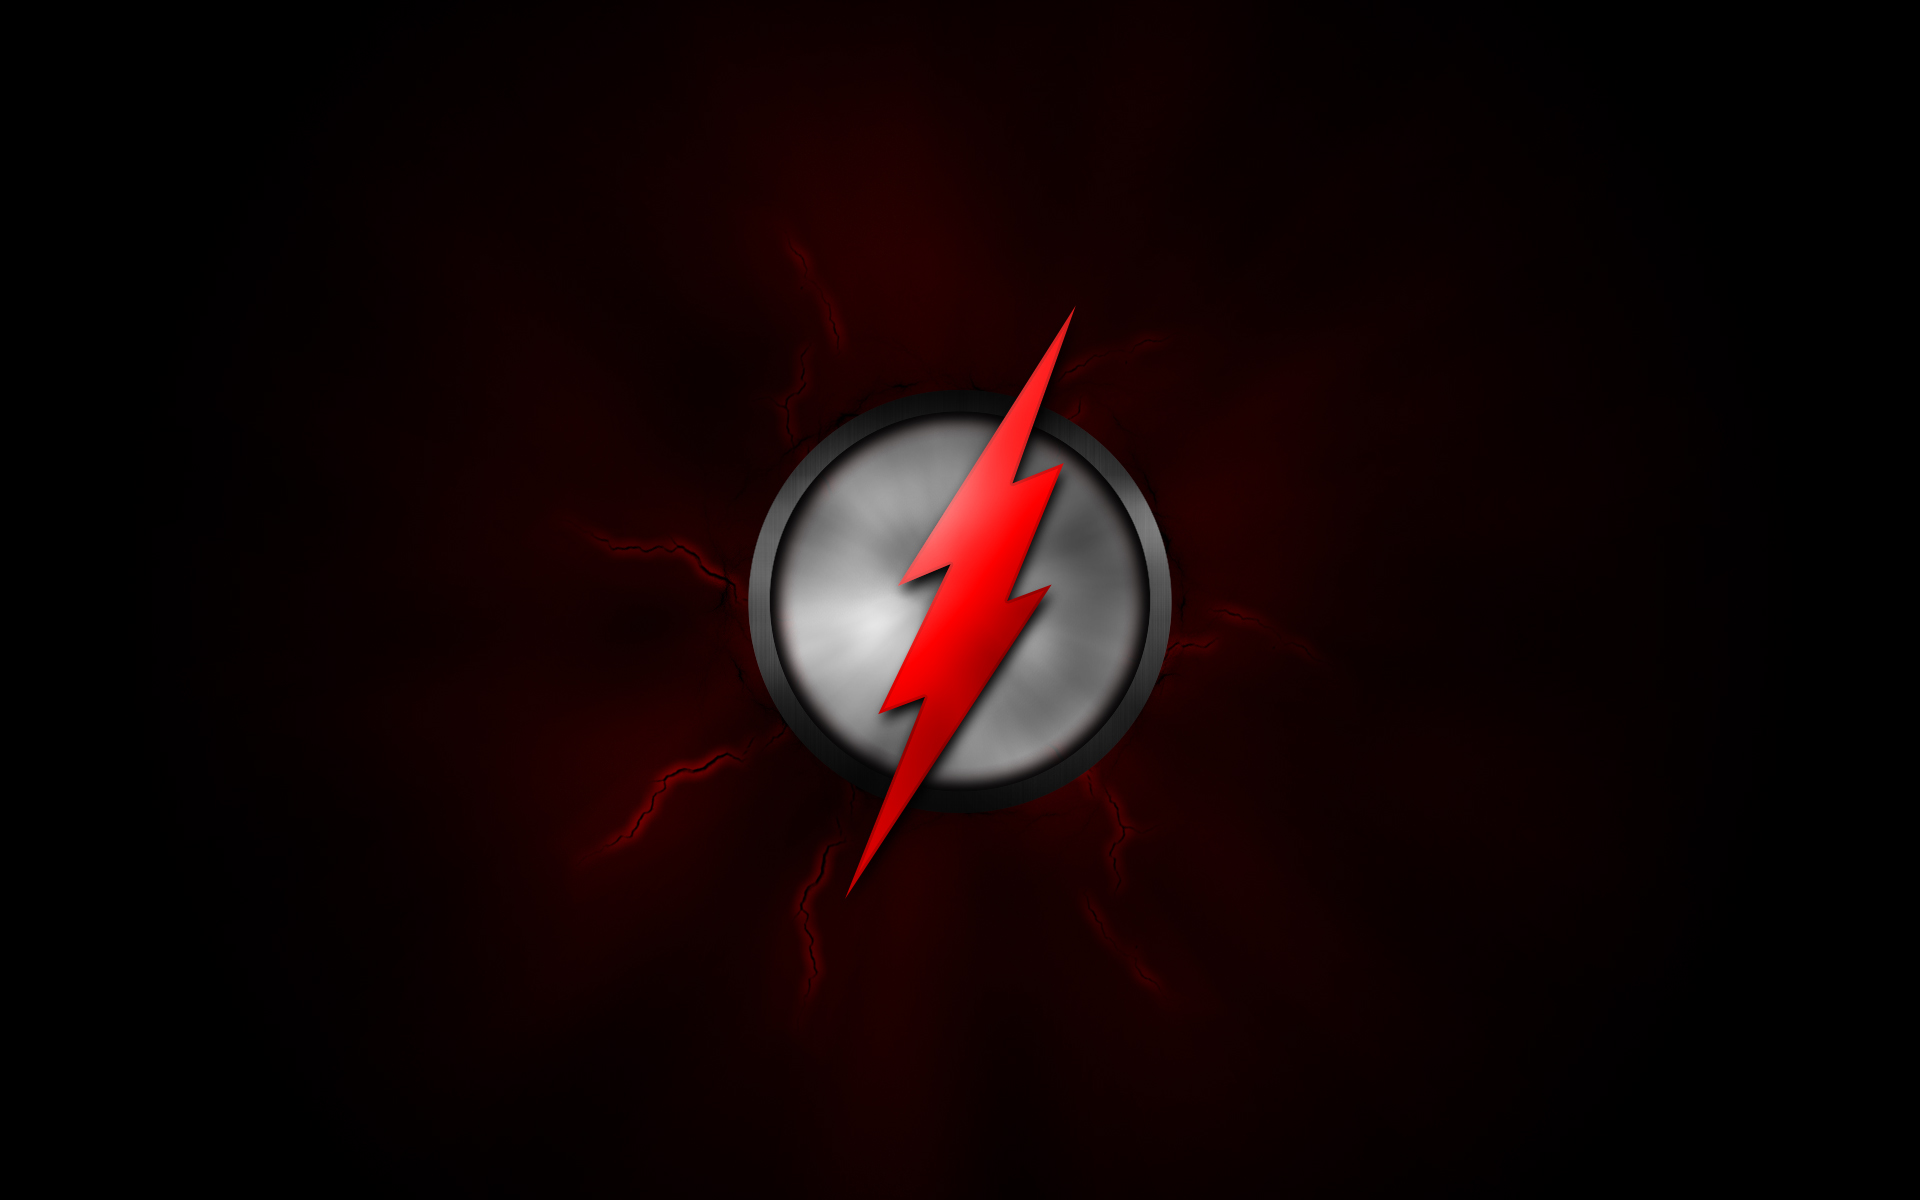 the flash wallpapers hd 38 wallpapers � adorable wallpapers